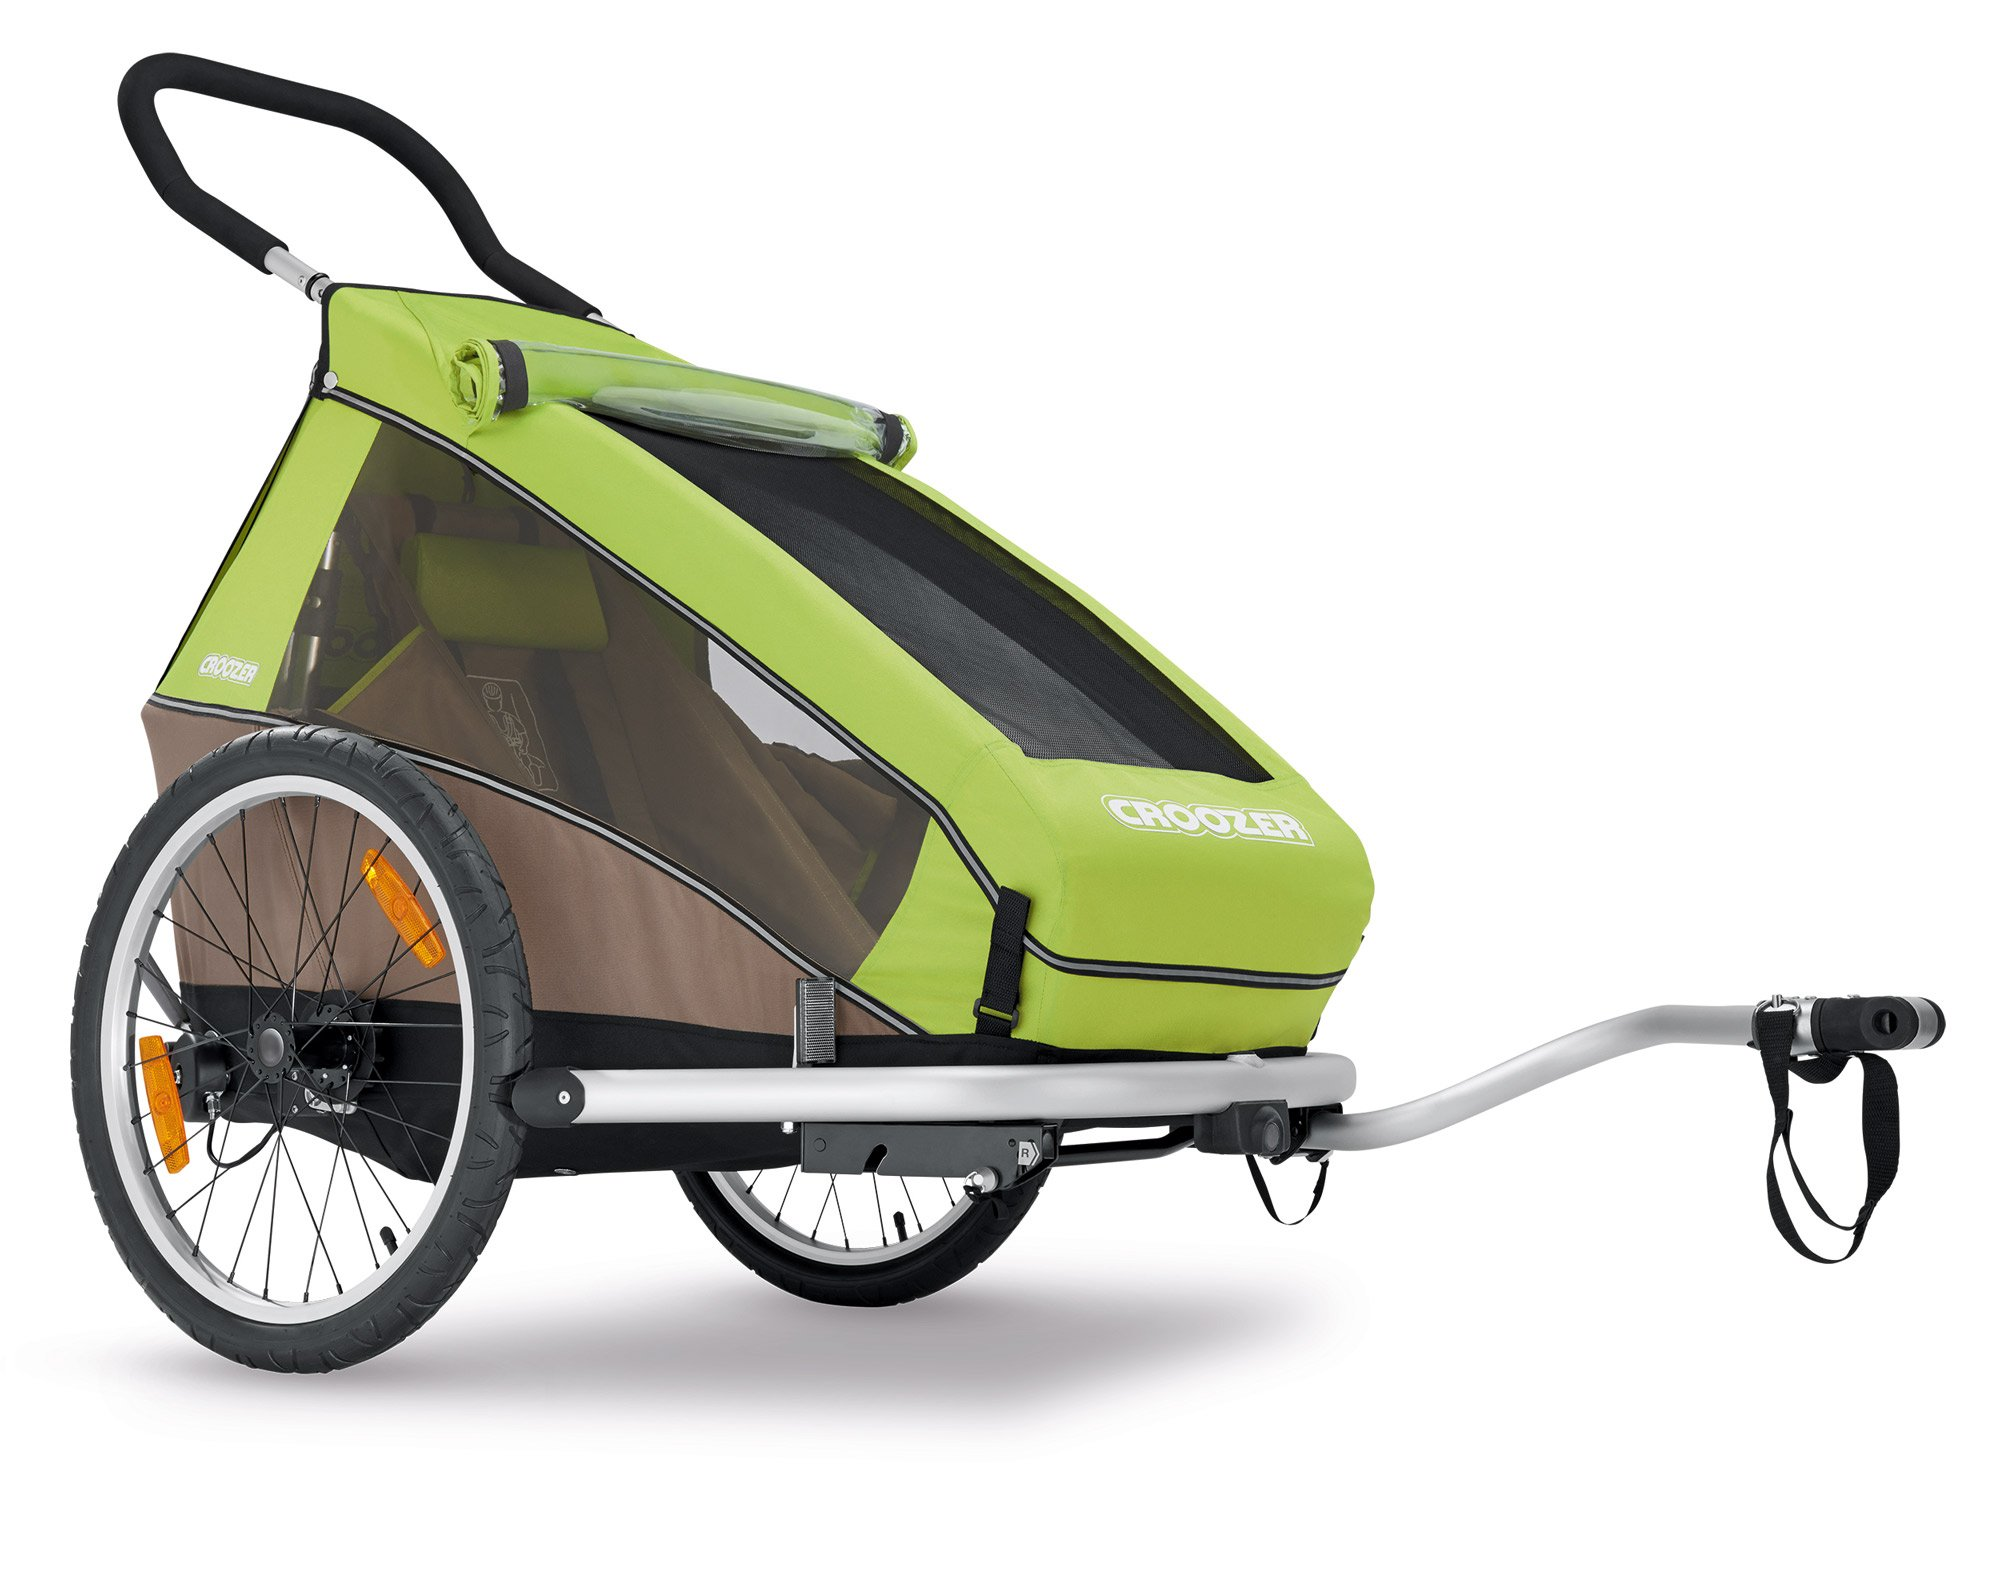 2016 Croozer Kid for 1 - 3 in 1 Single Child Trailer (Includes Trailer kit, Stroller Kit and Jogging Kit) Meadow Green / Sand Grey